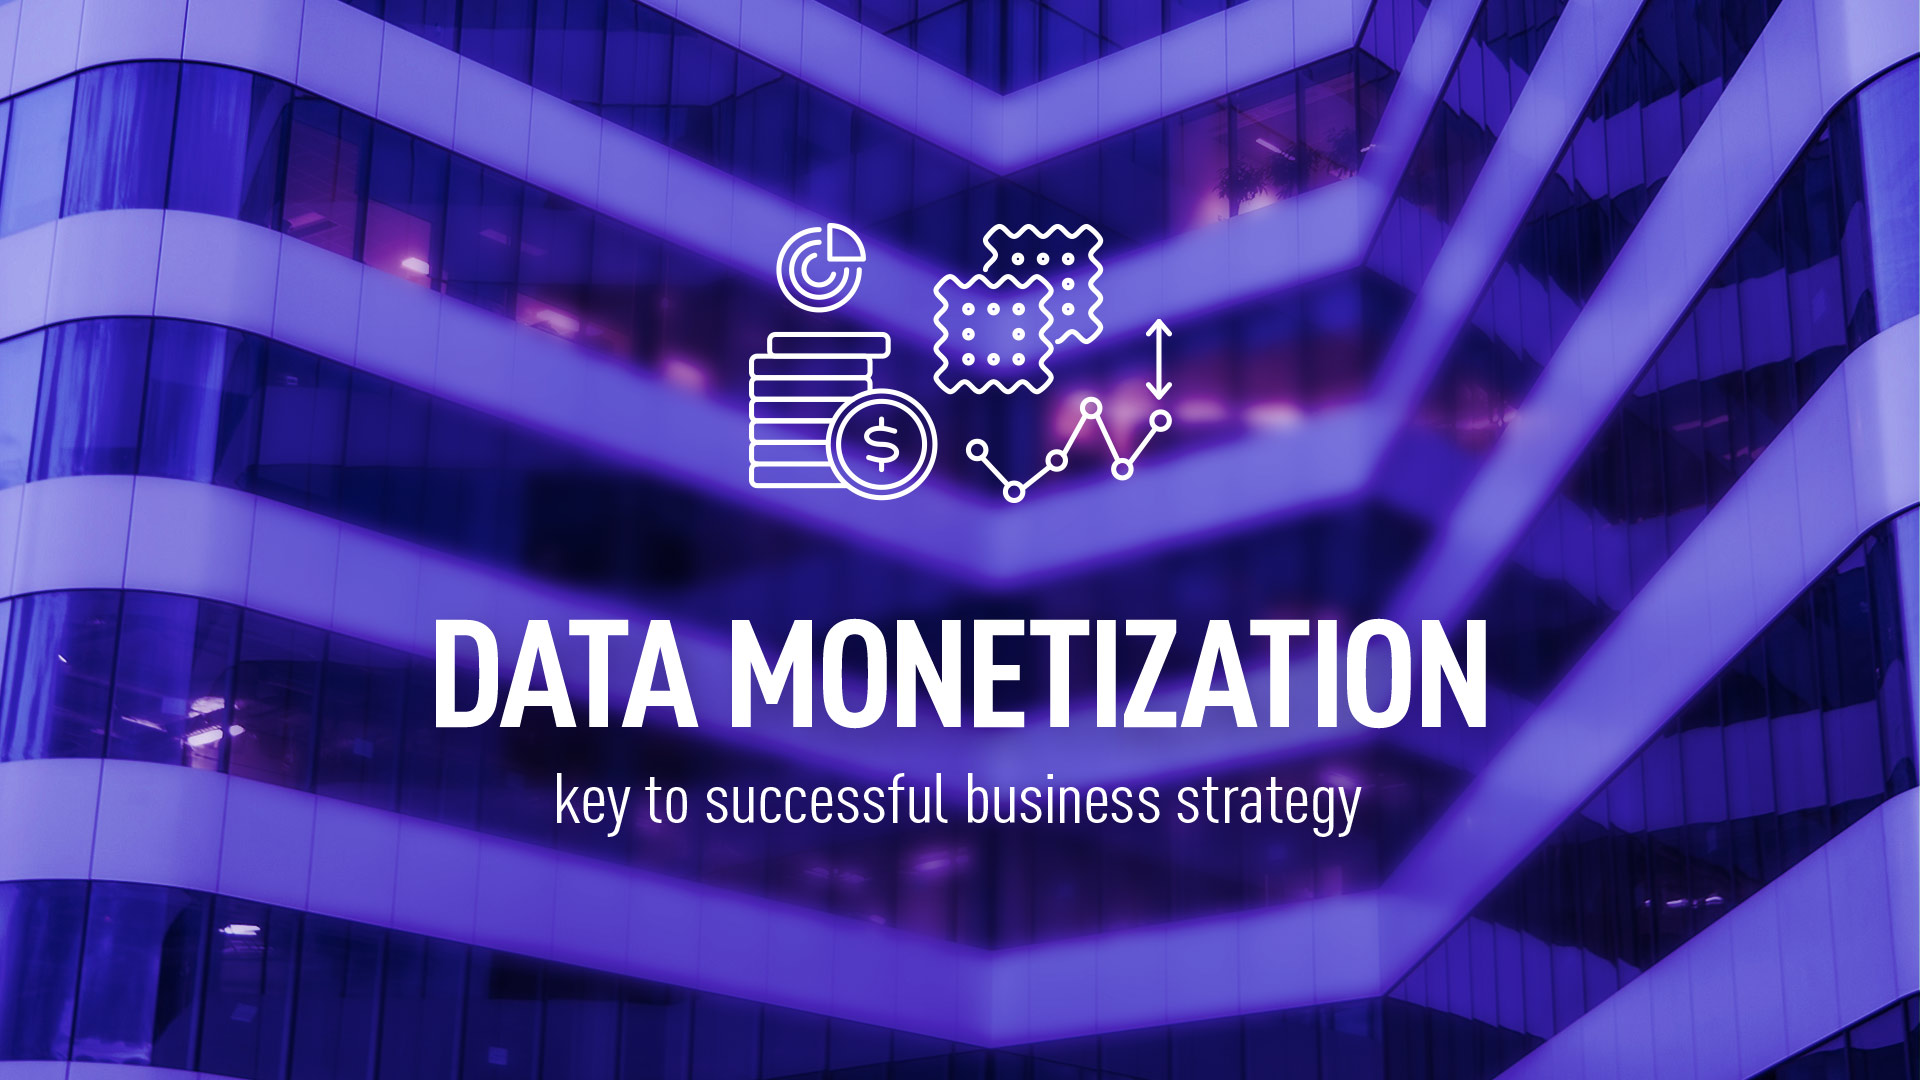 How to monetize data